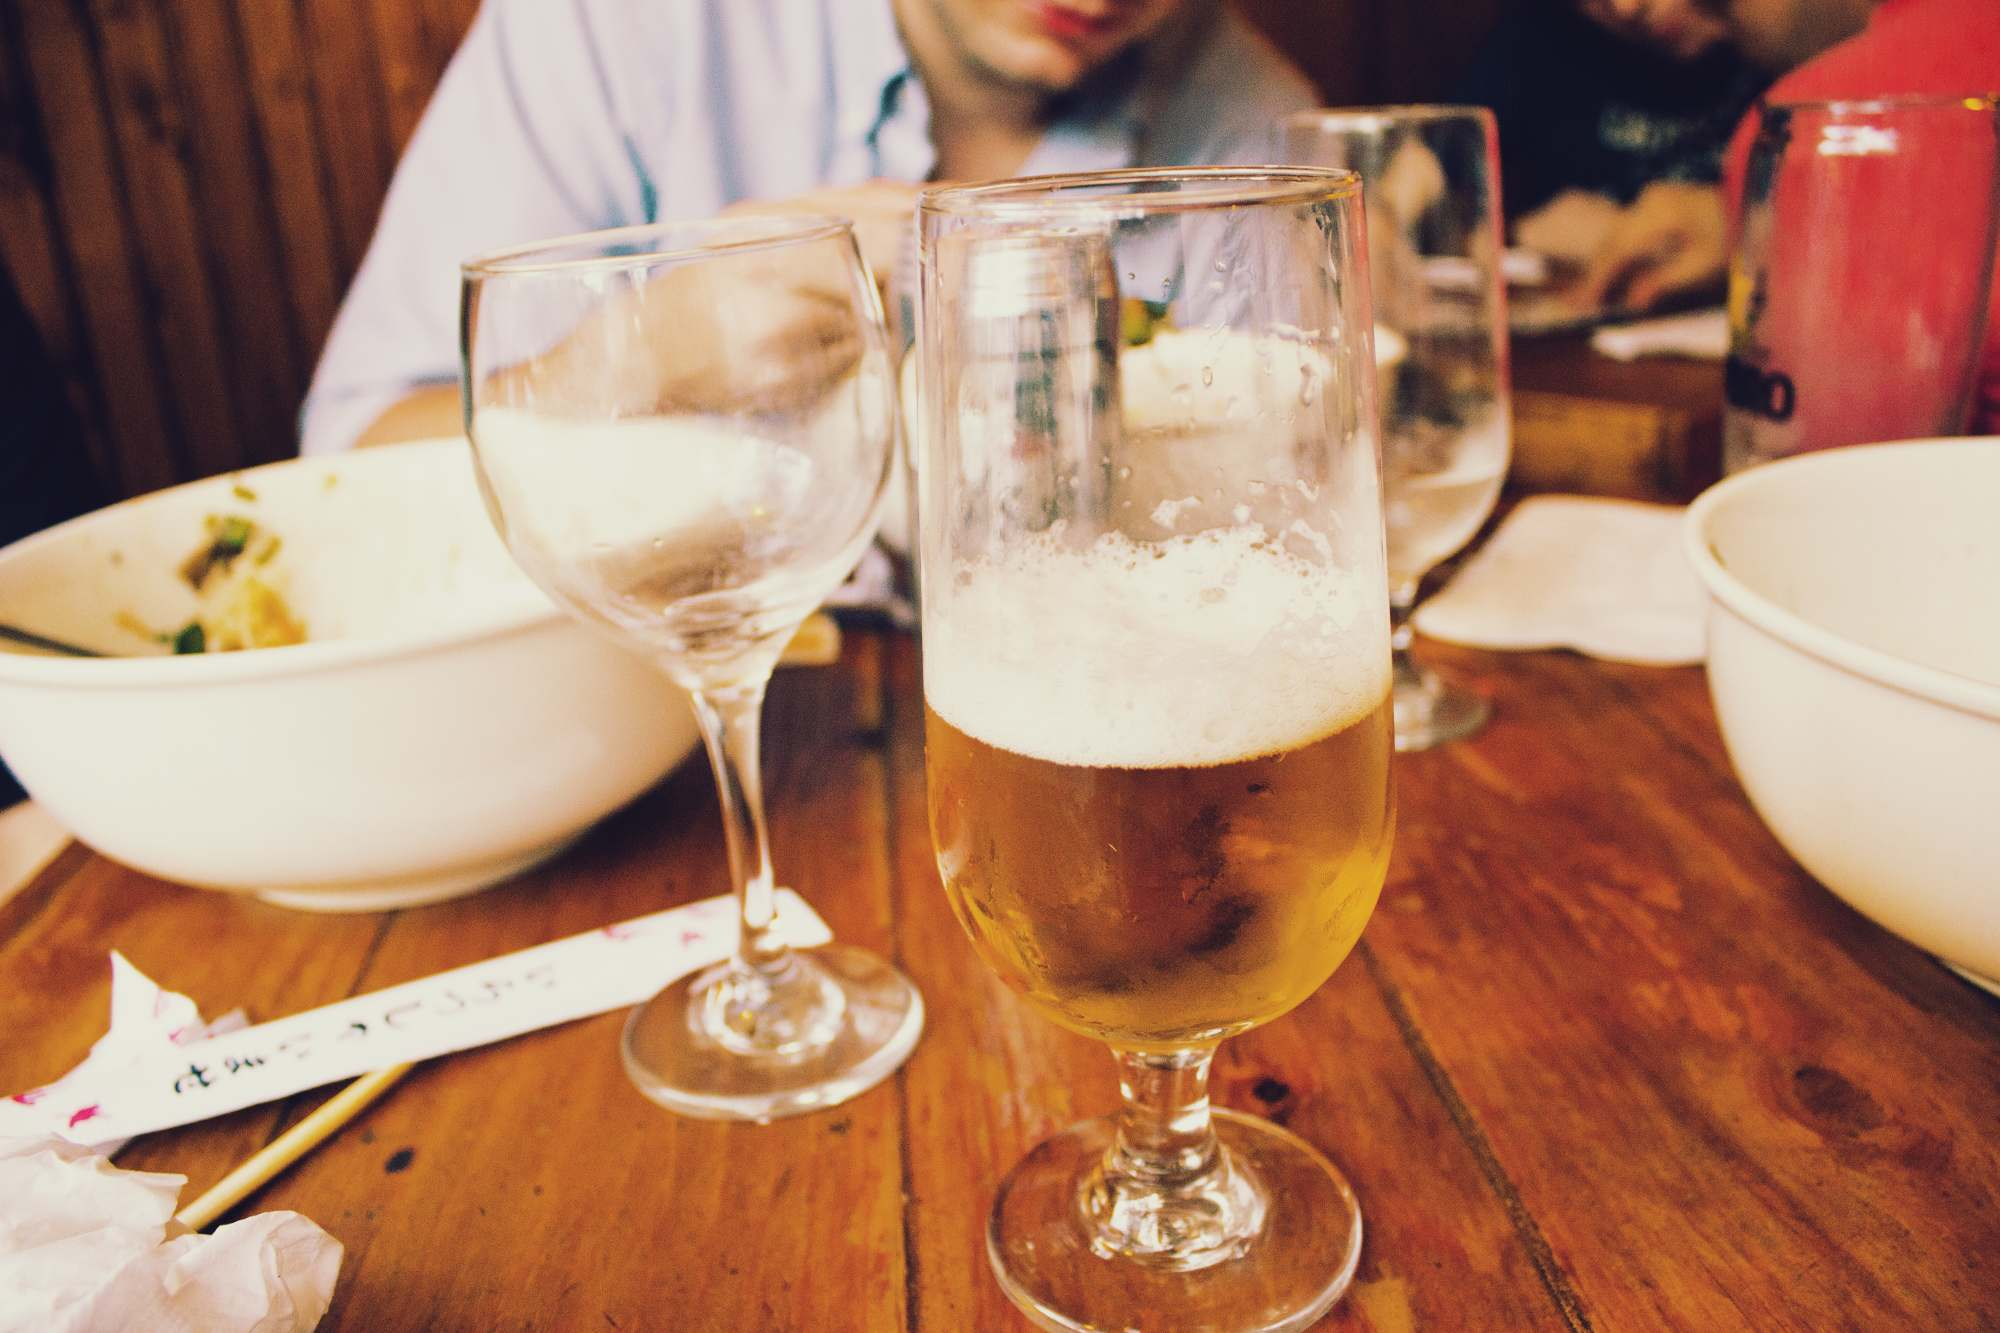 Harm Reduction Vs Abstinence Based Treatment For Alcohol